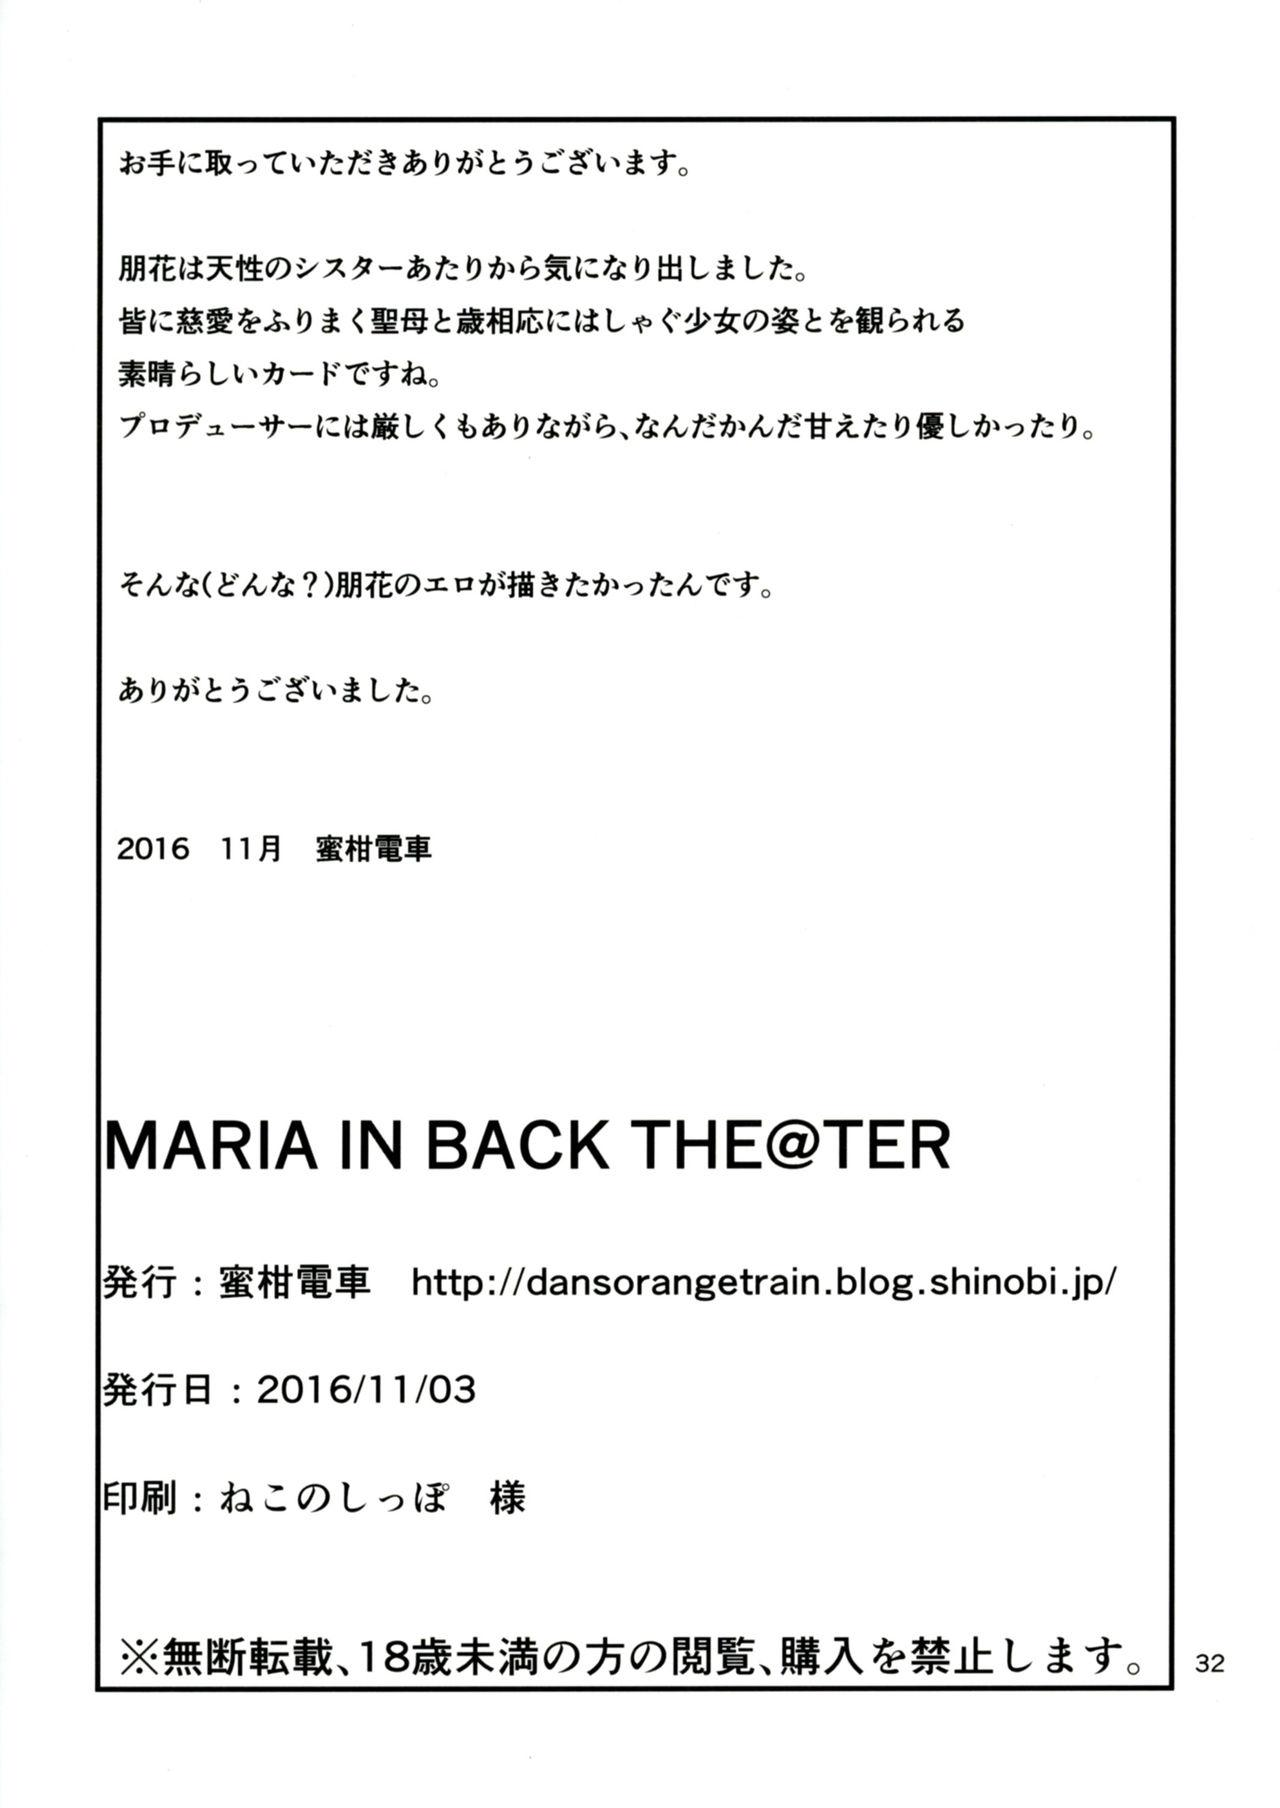 MARIA IN BACK THE@TER 32